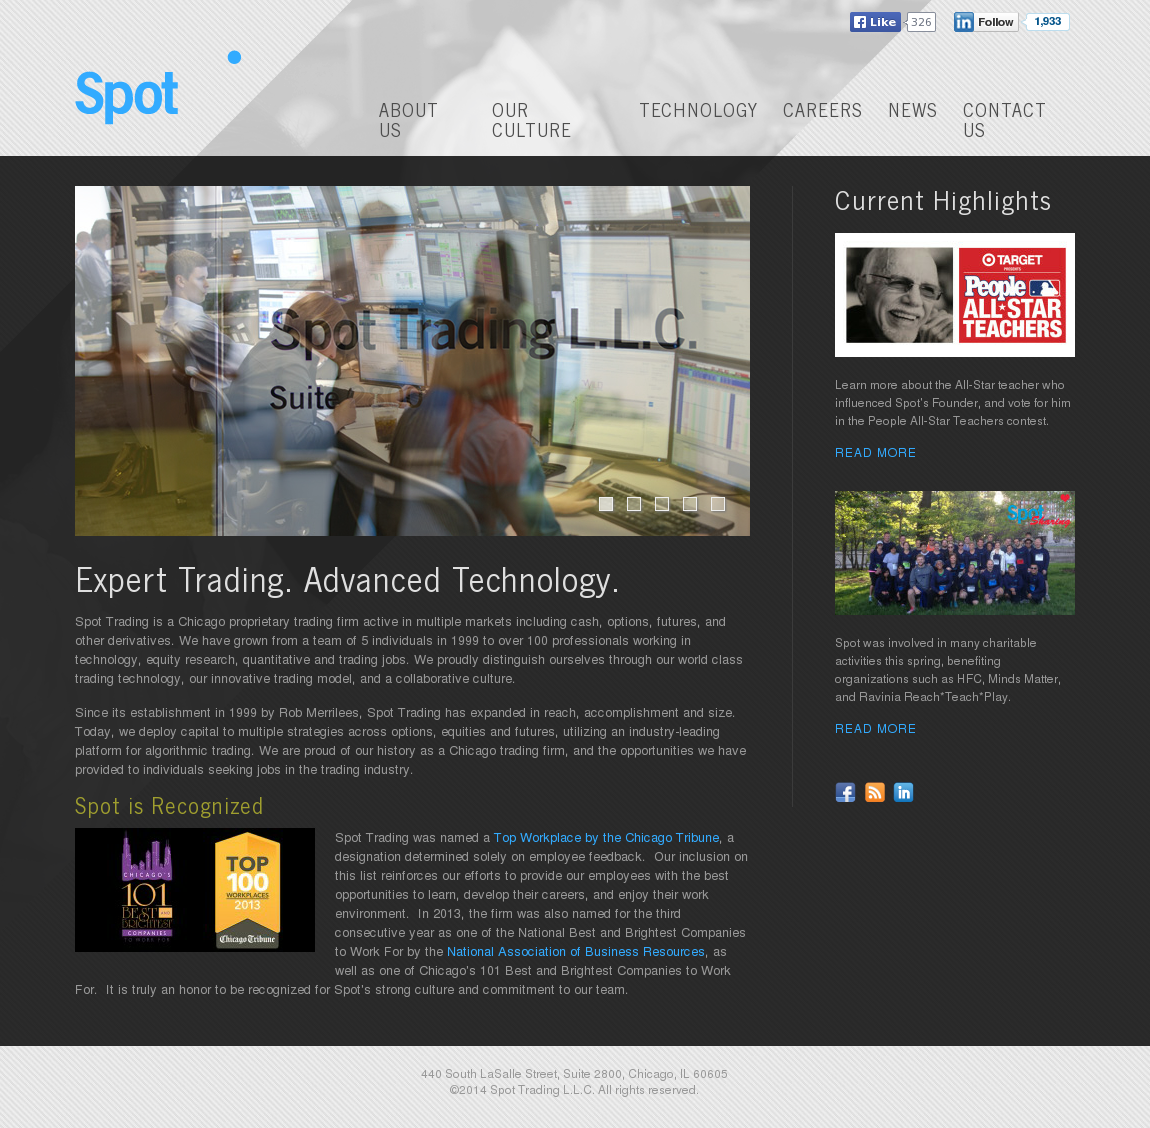 Spot trading co